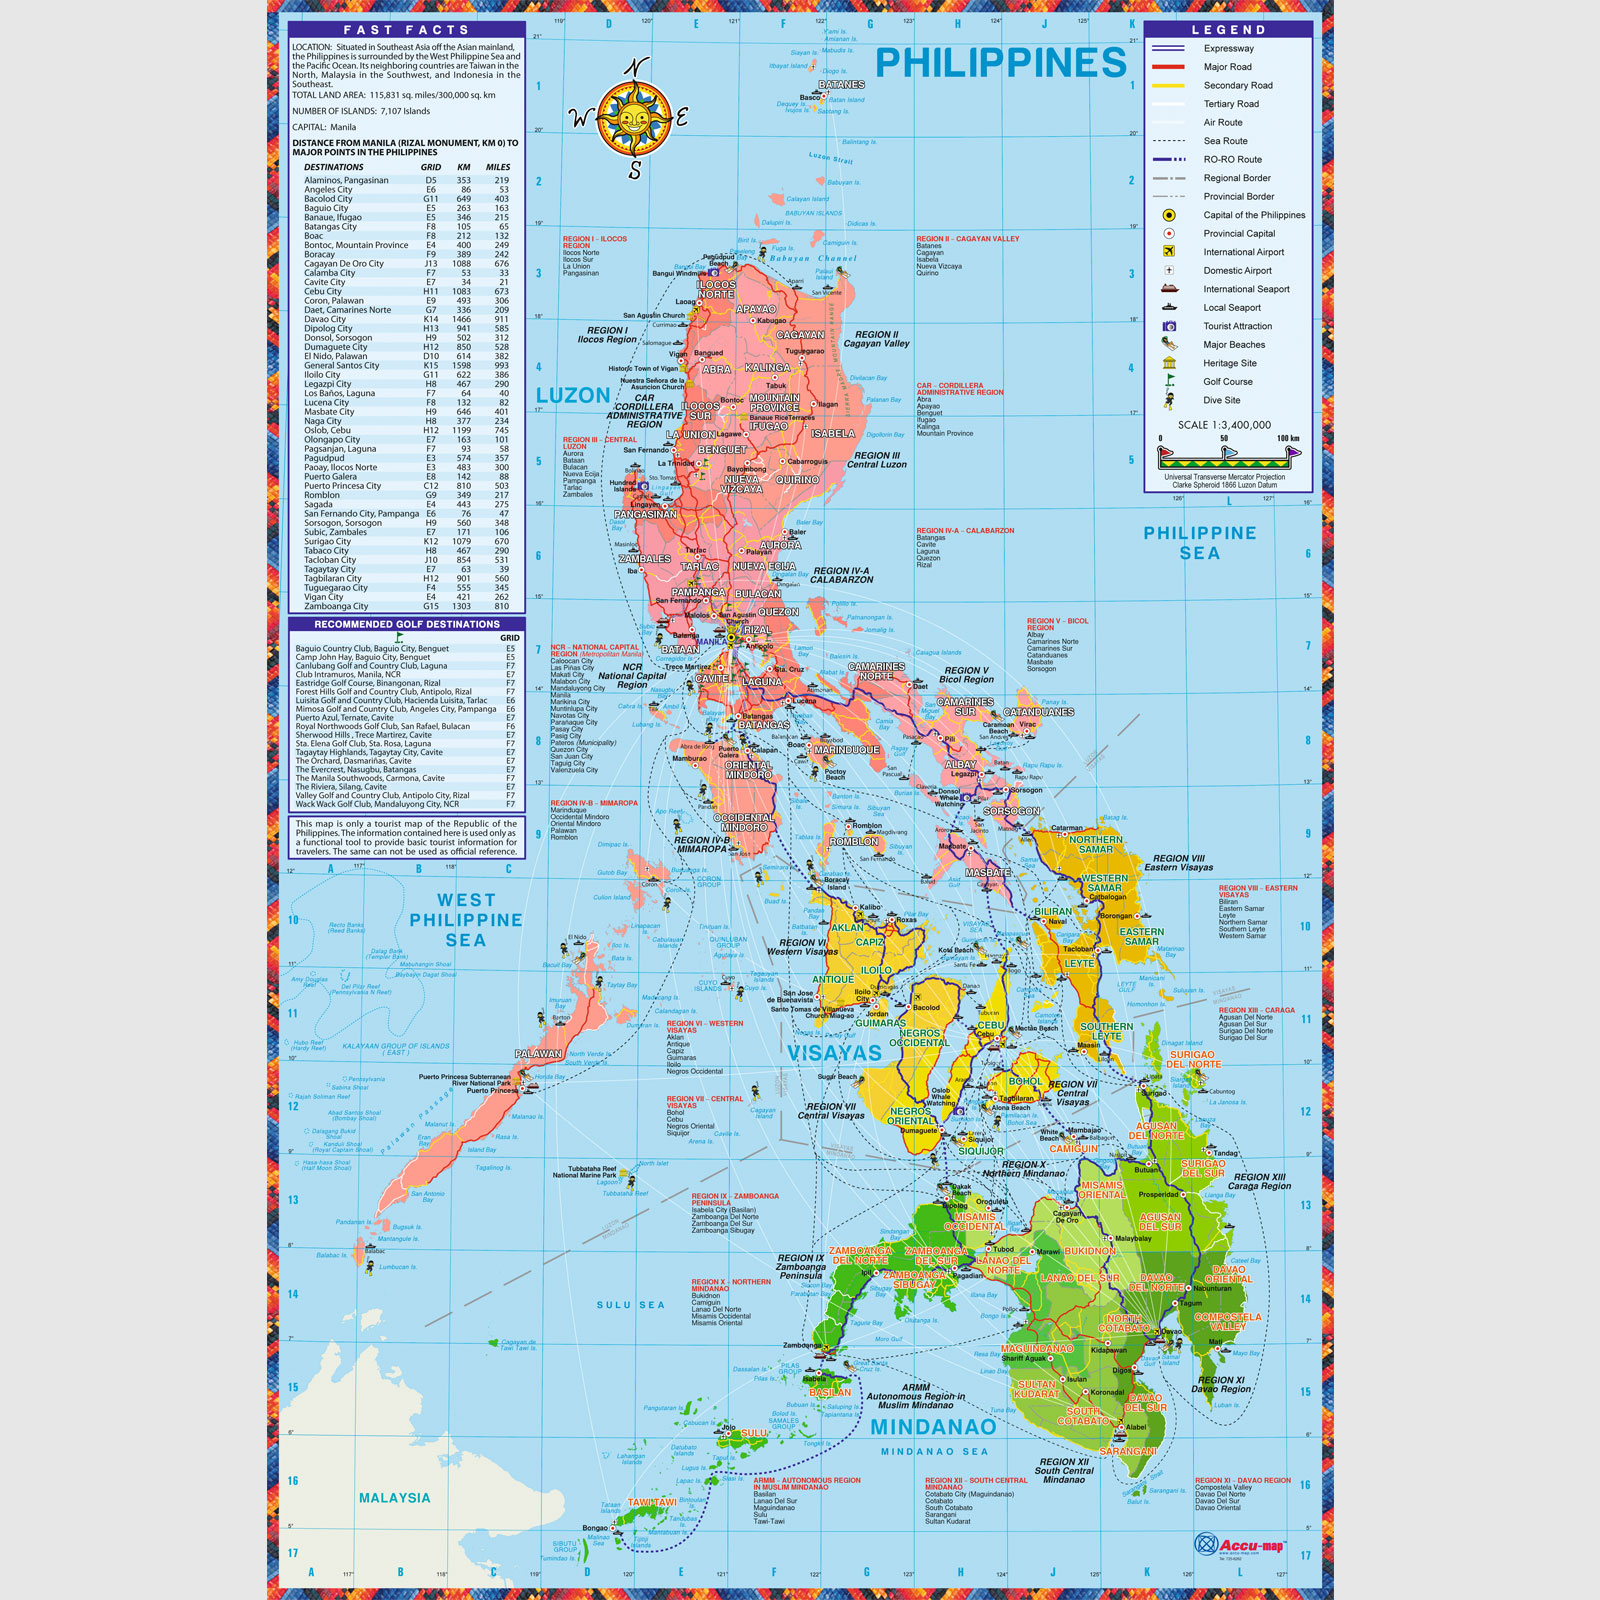 Philippine Map (Political) - Full Customization, Accu-map, Inc. on